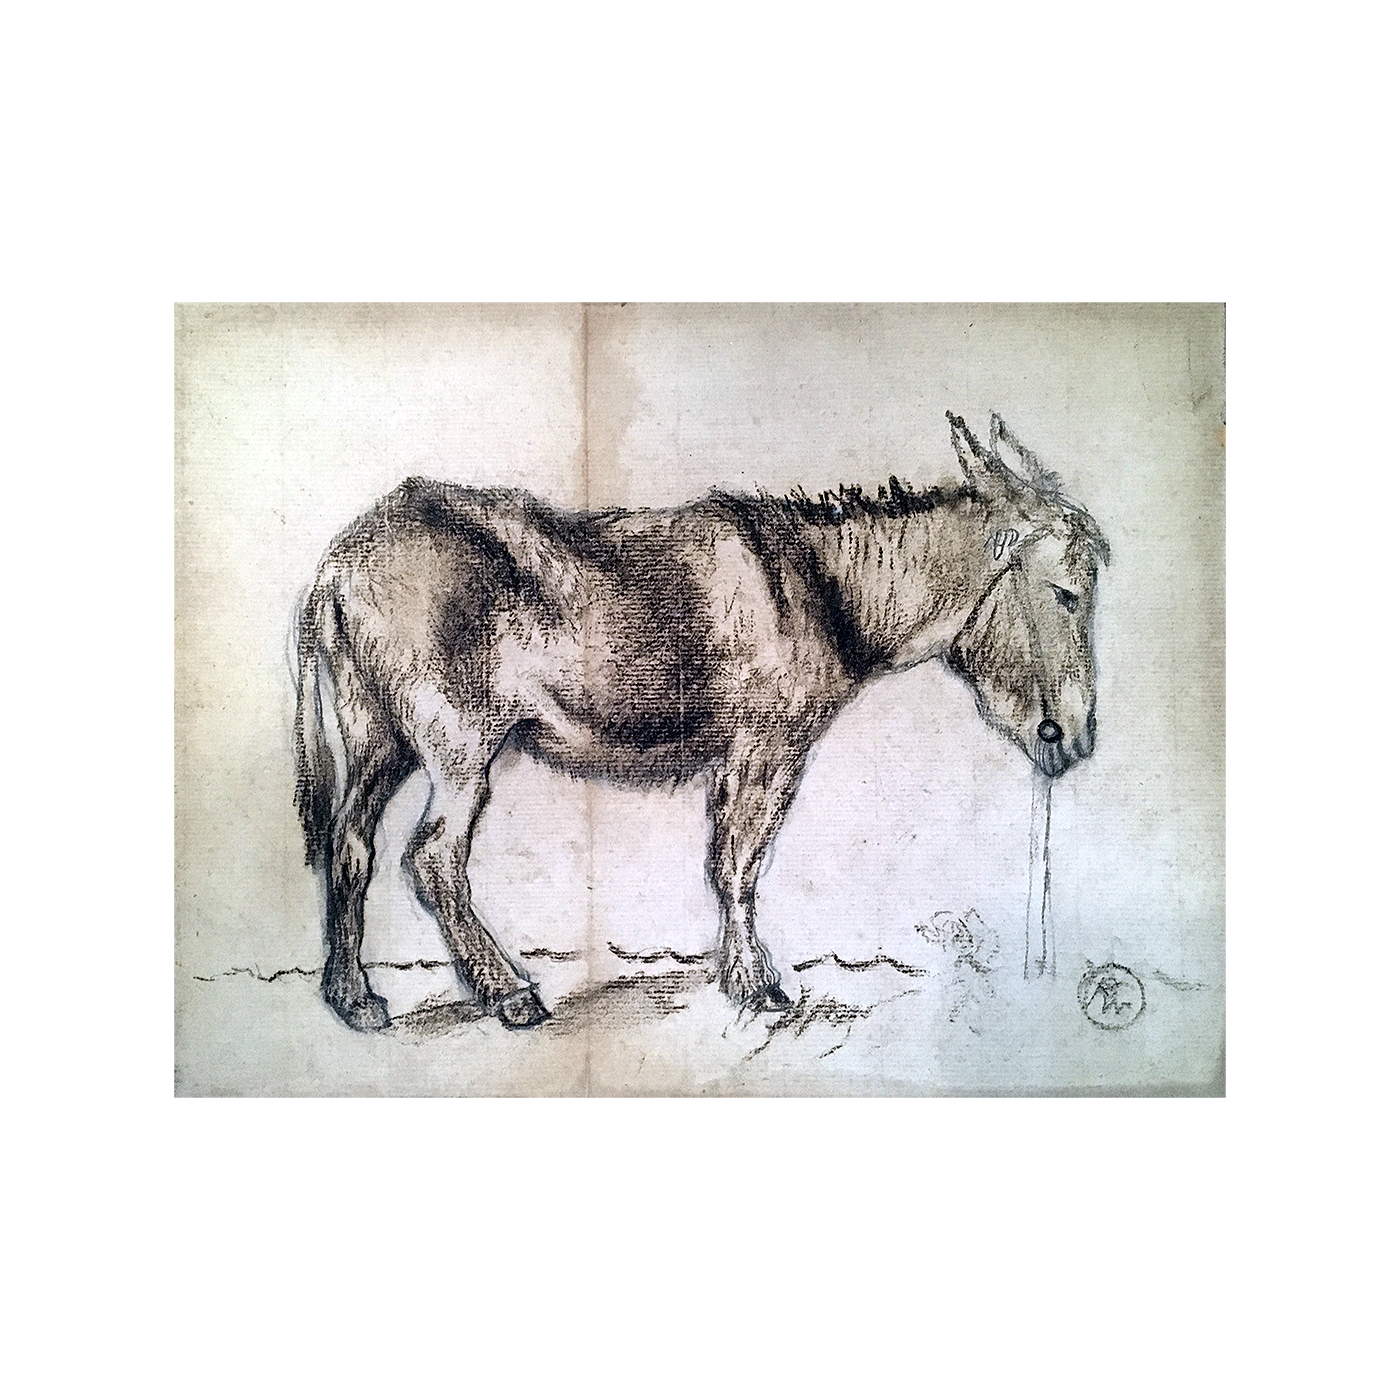 American or South American drawing : The burro, early 20th-century.